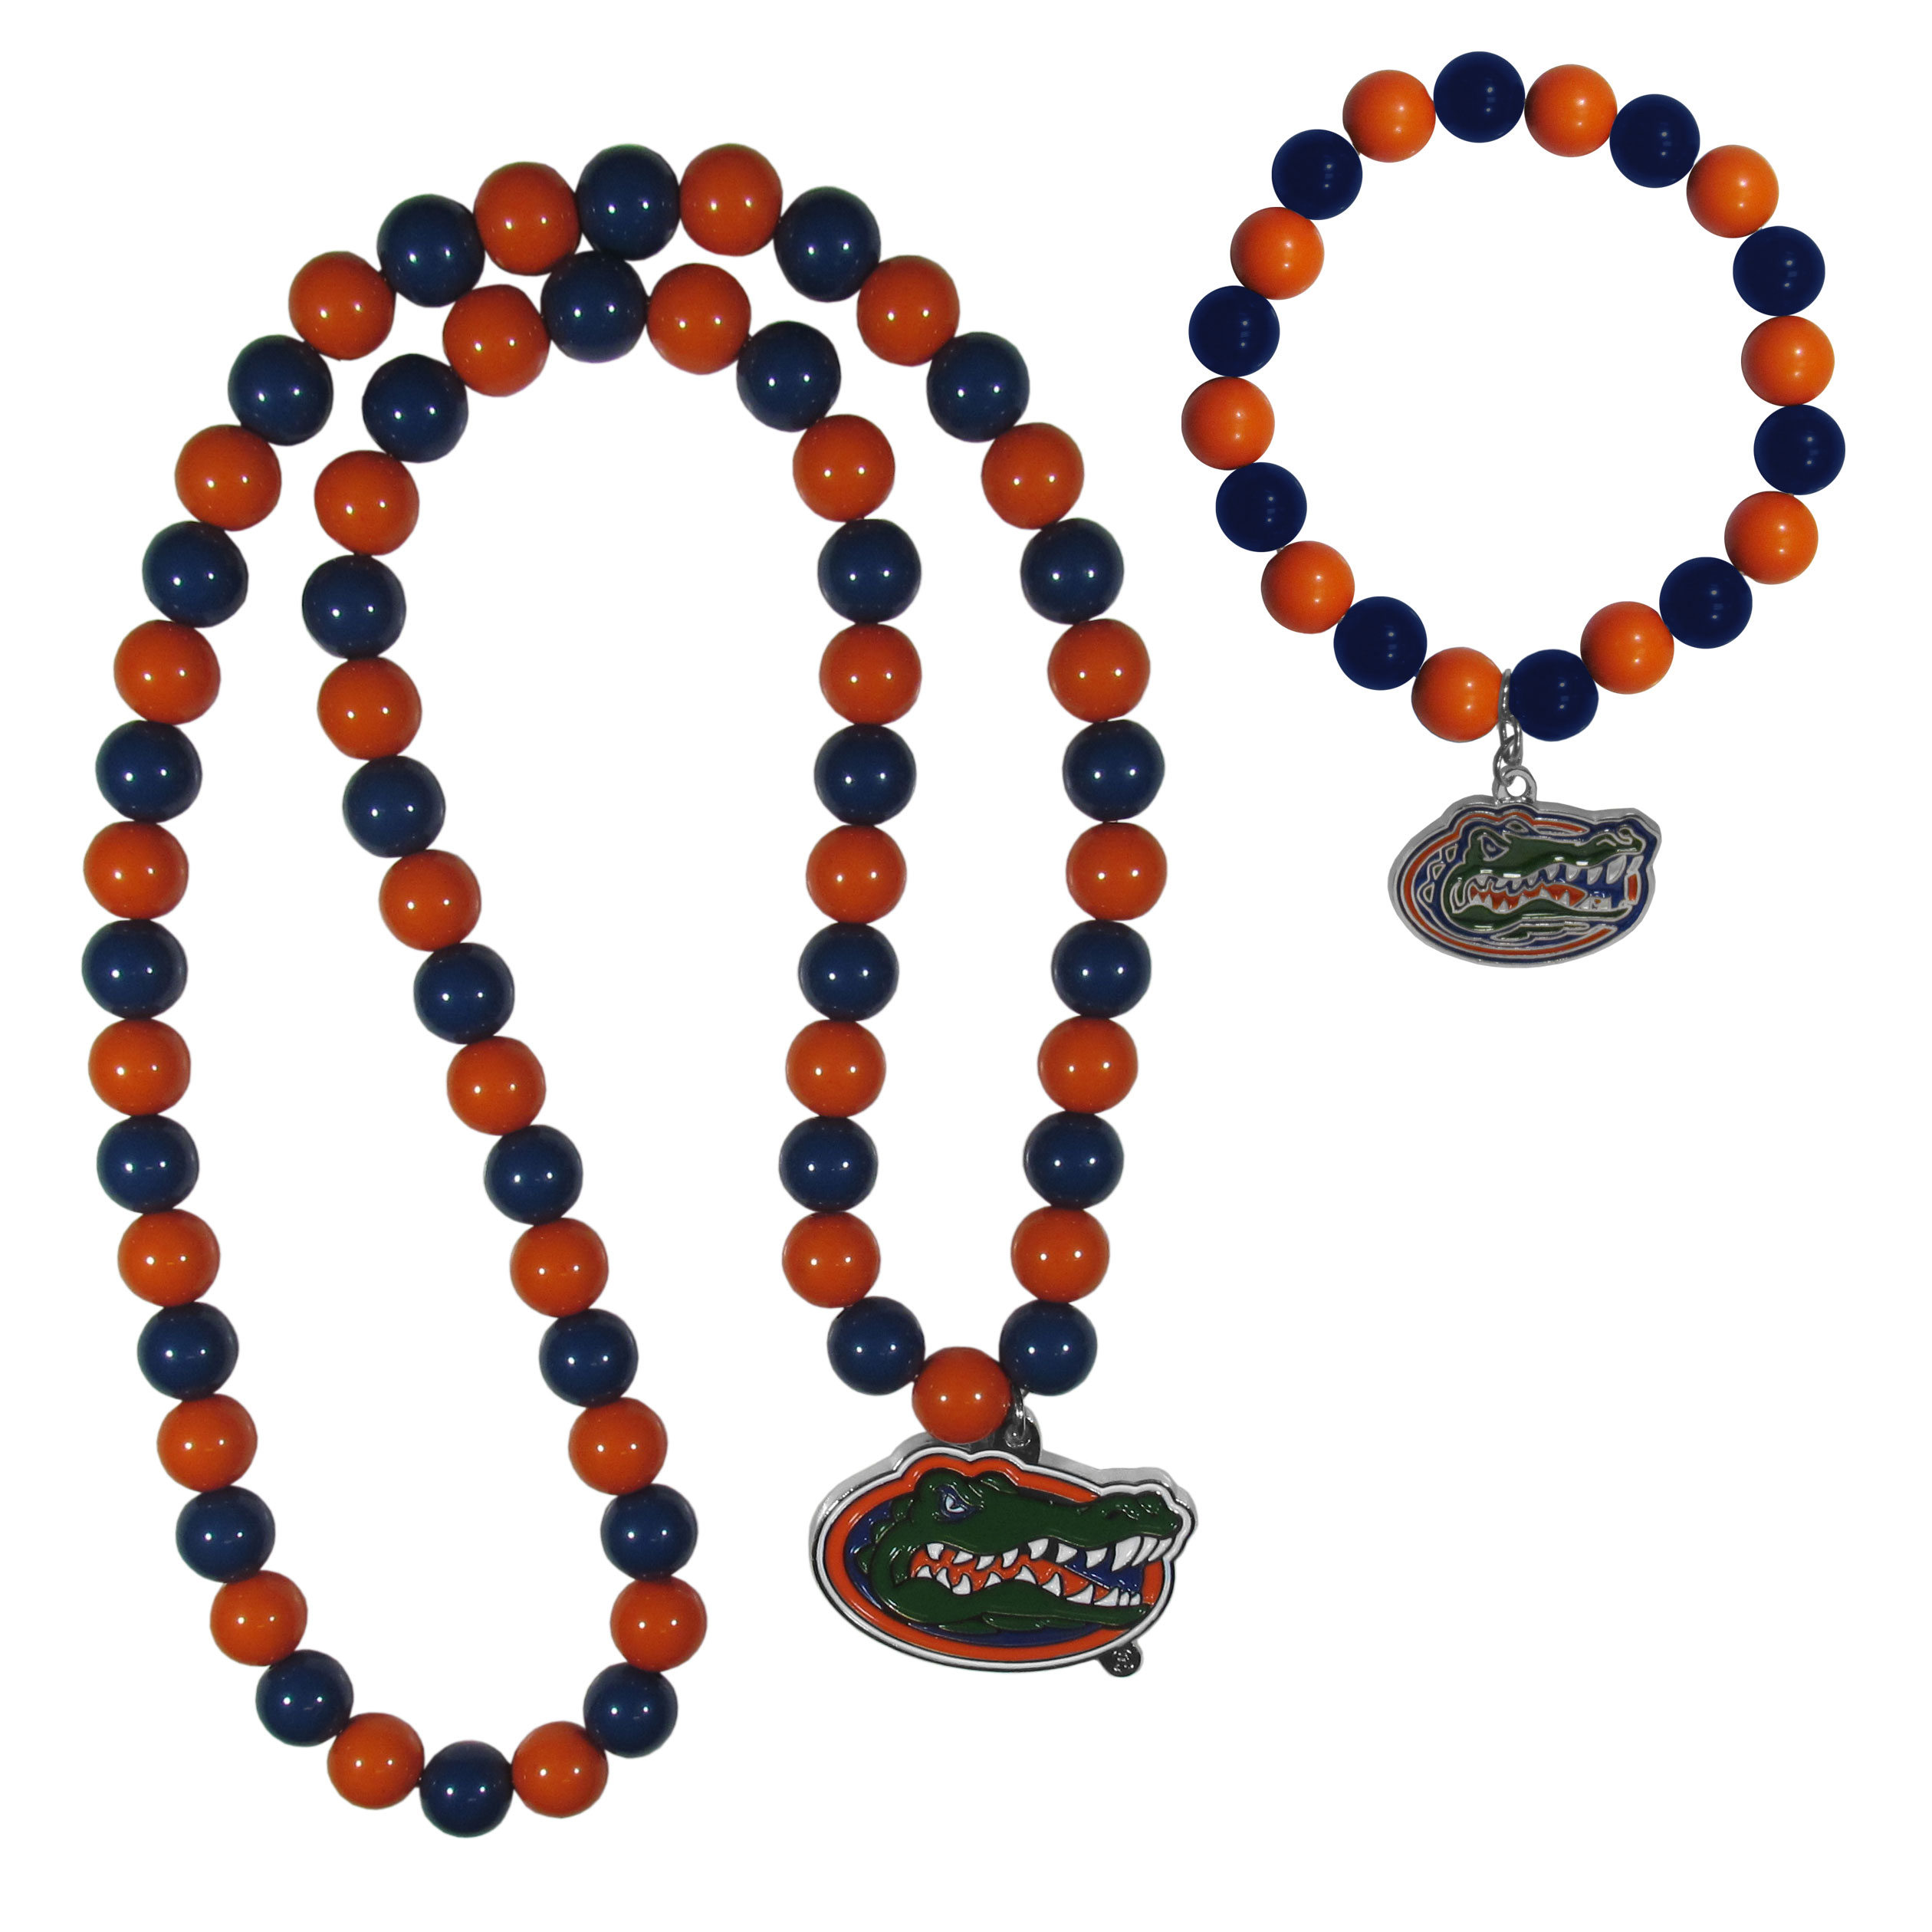 Florida Gators Fan Bead Necklace and Bracelet Set - These fun and colorful Florida Gators fan bead jewelry pieces are an eyecatching way to show off your team spirit. The striking necklace is a 24 inch string of alternating team colored beads with a large team pendant. The mathcing bracelet has alternating team colored beads on a stretch cord and features a matching team charm.